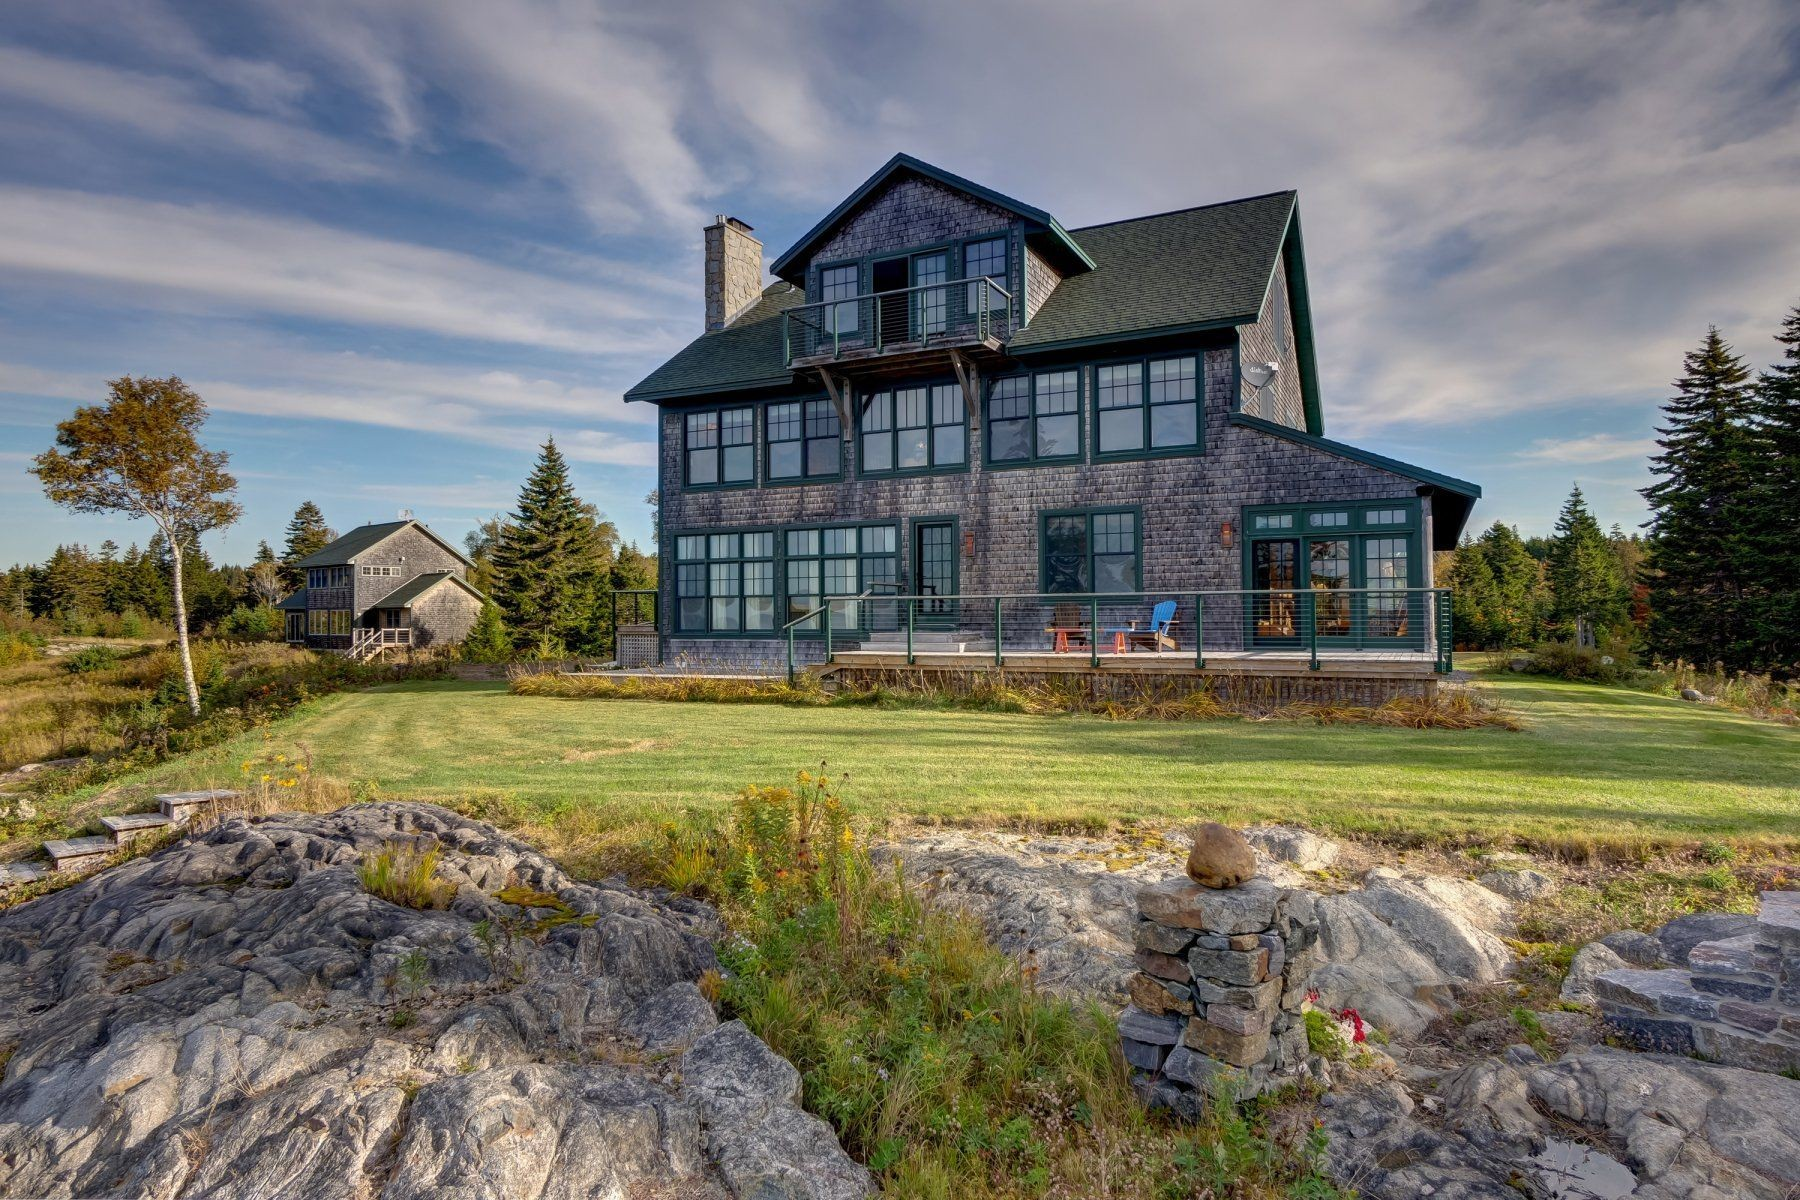 poets lodge a luxury single family home for sale in addison, maine property id 419604242 christie s international real estate